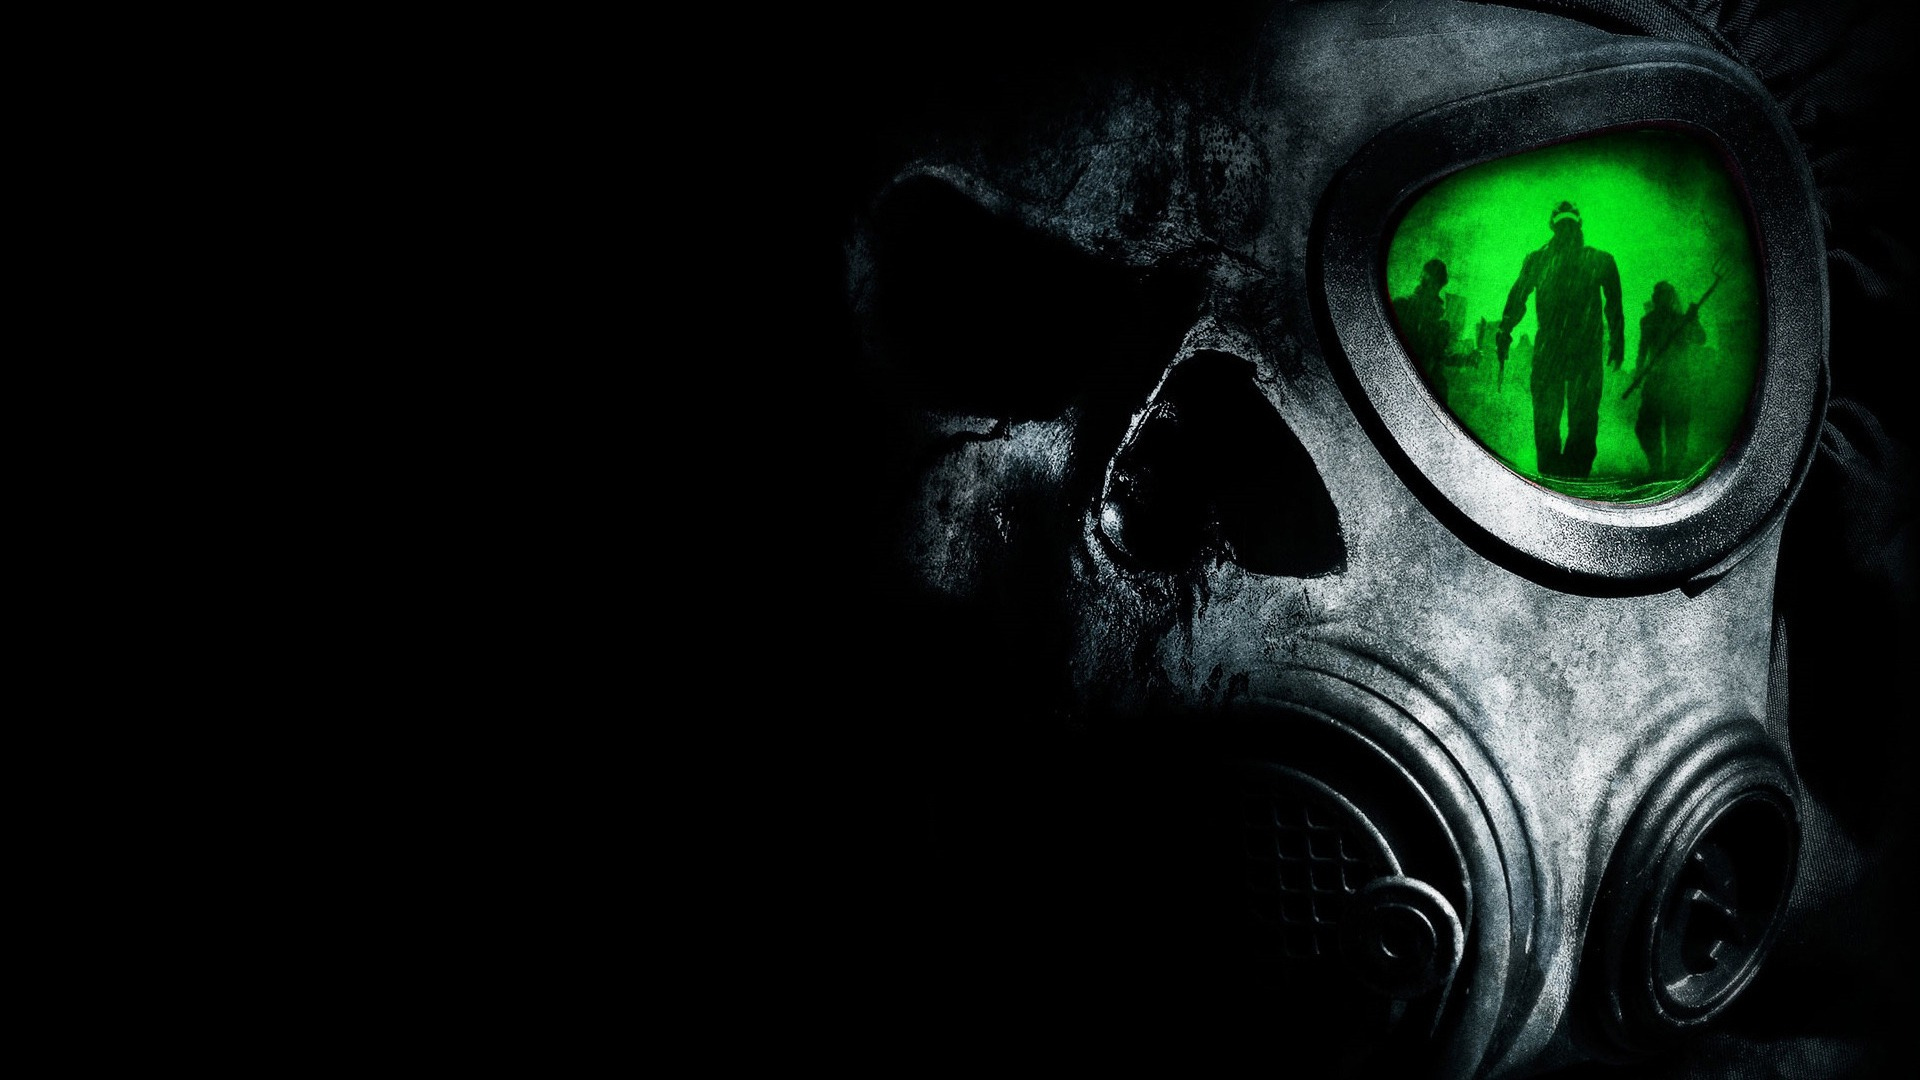 Skull Gas Mask HD Wallpaper Wallpaper 1920x1080